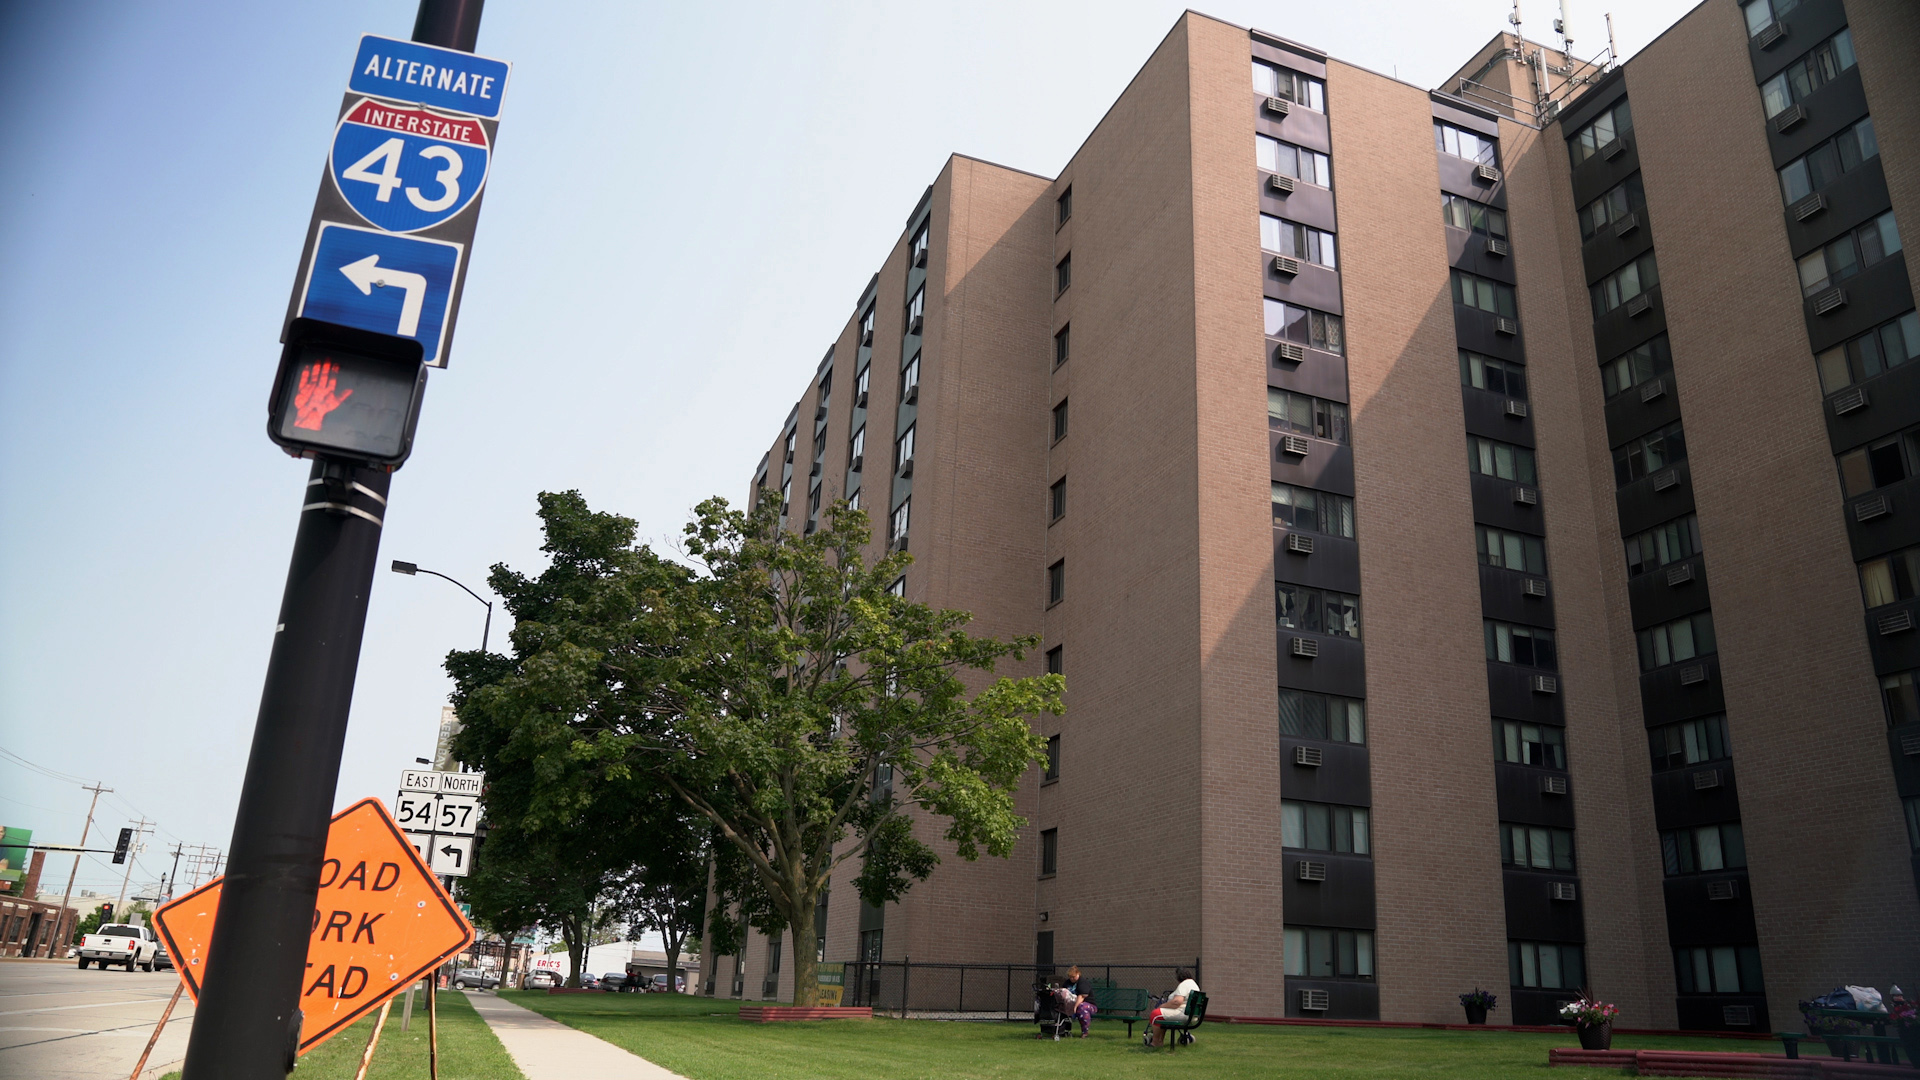 A 10-story apartment tower with Interstate 43 sign next to sidewalk